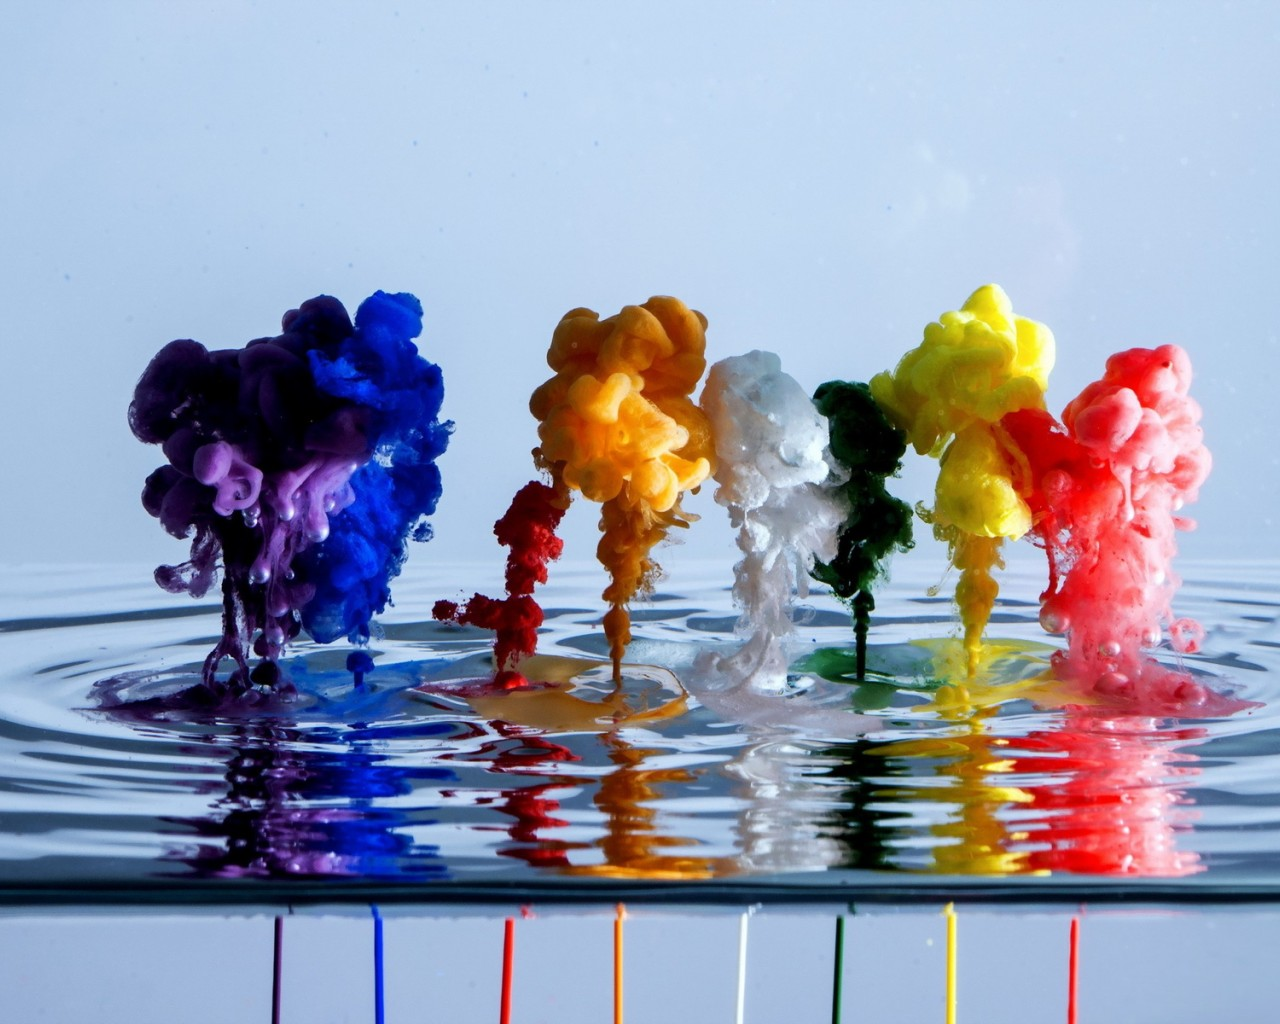 Paints Dropped into Water